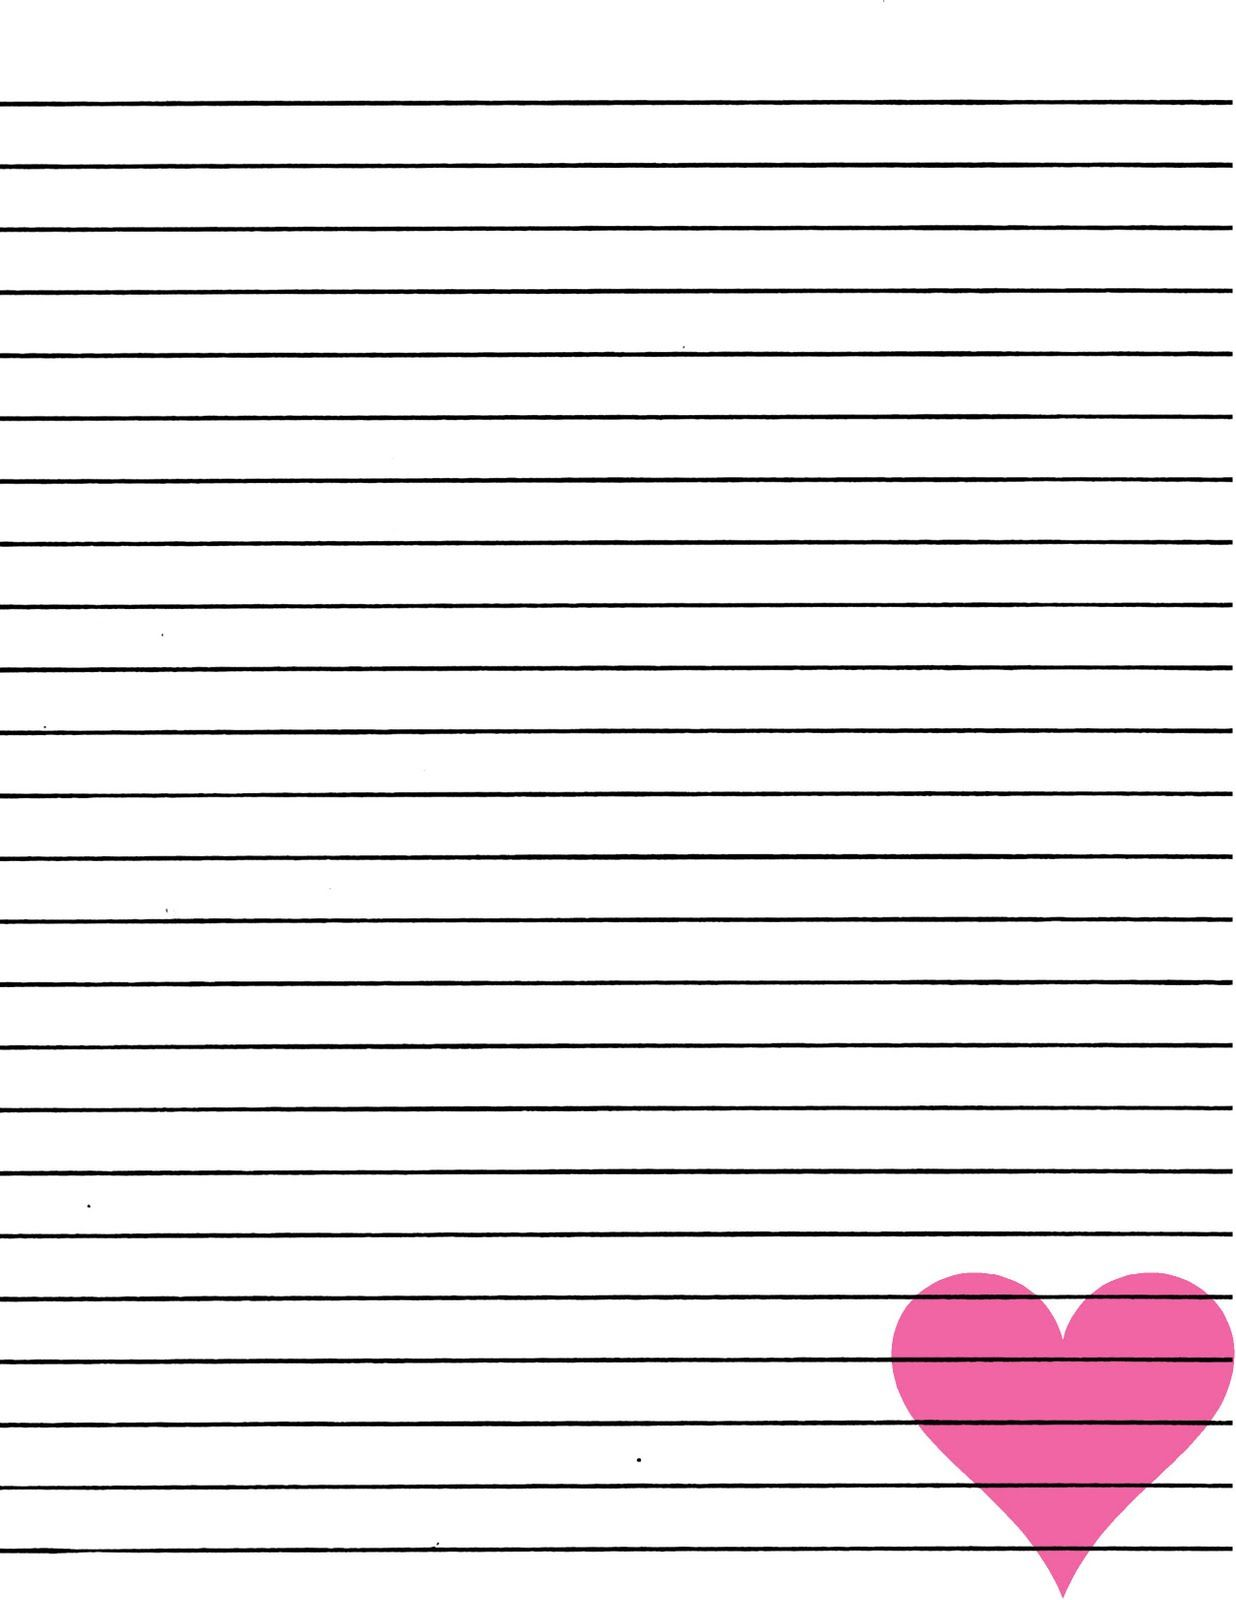 Just Smashing Paper FREEBIE Pink heart lined paper printable – Print College Ruled Paper